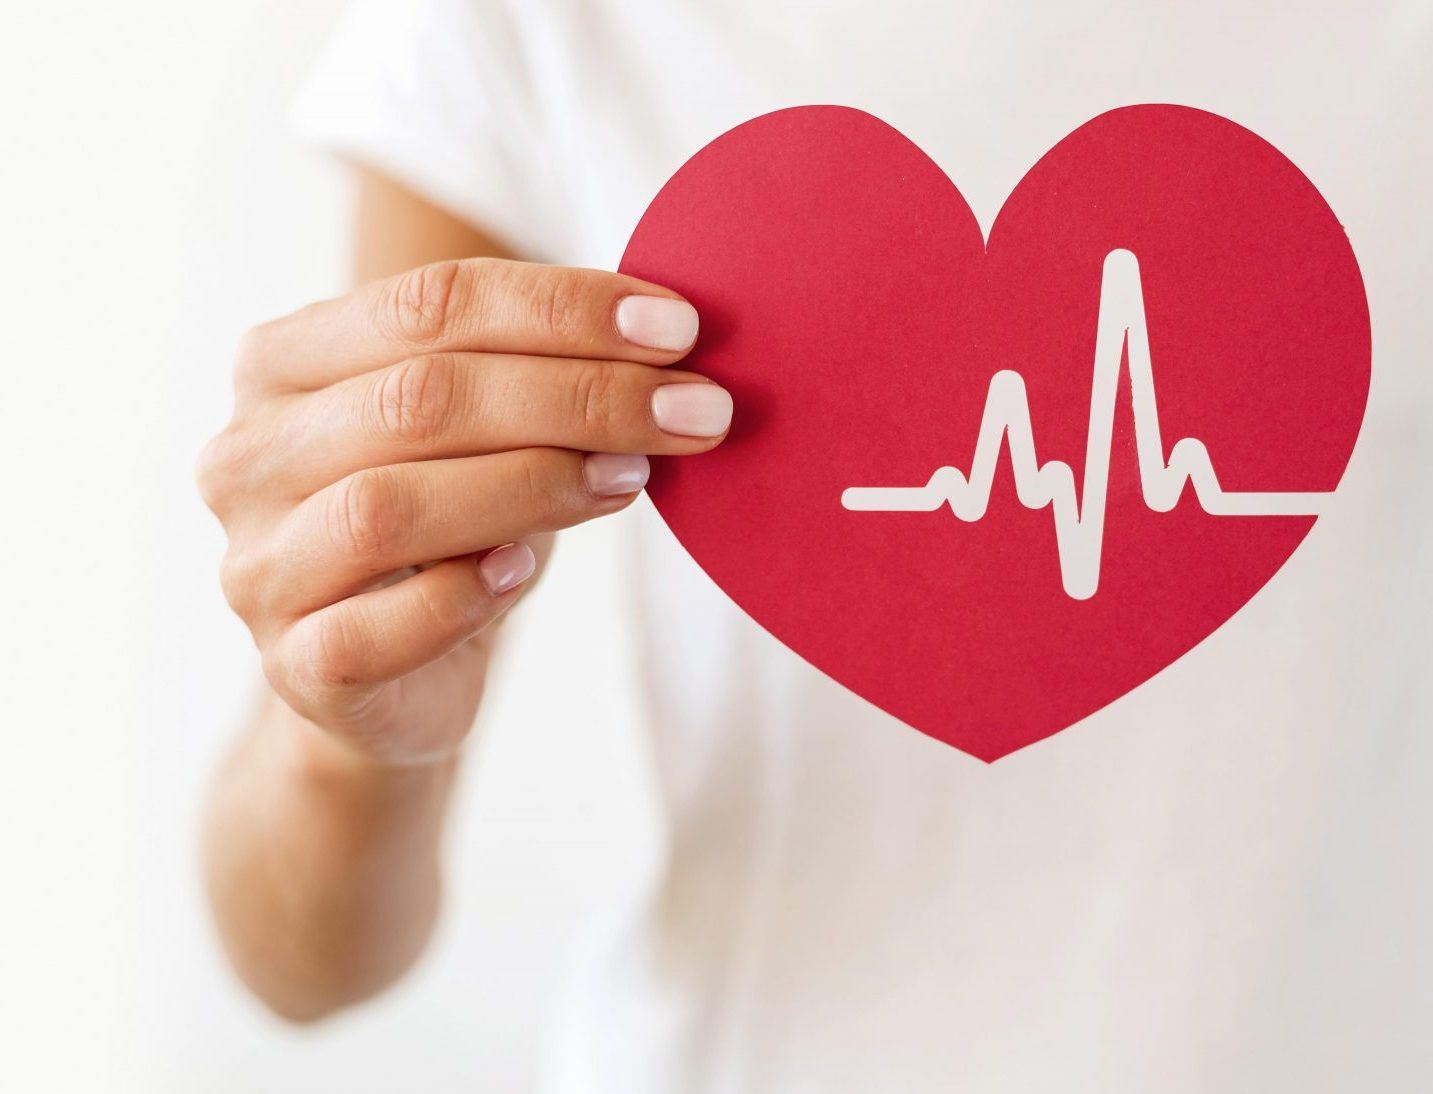 Tips to Keep Your Heart Healthy